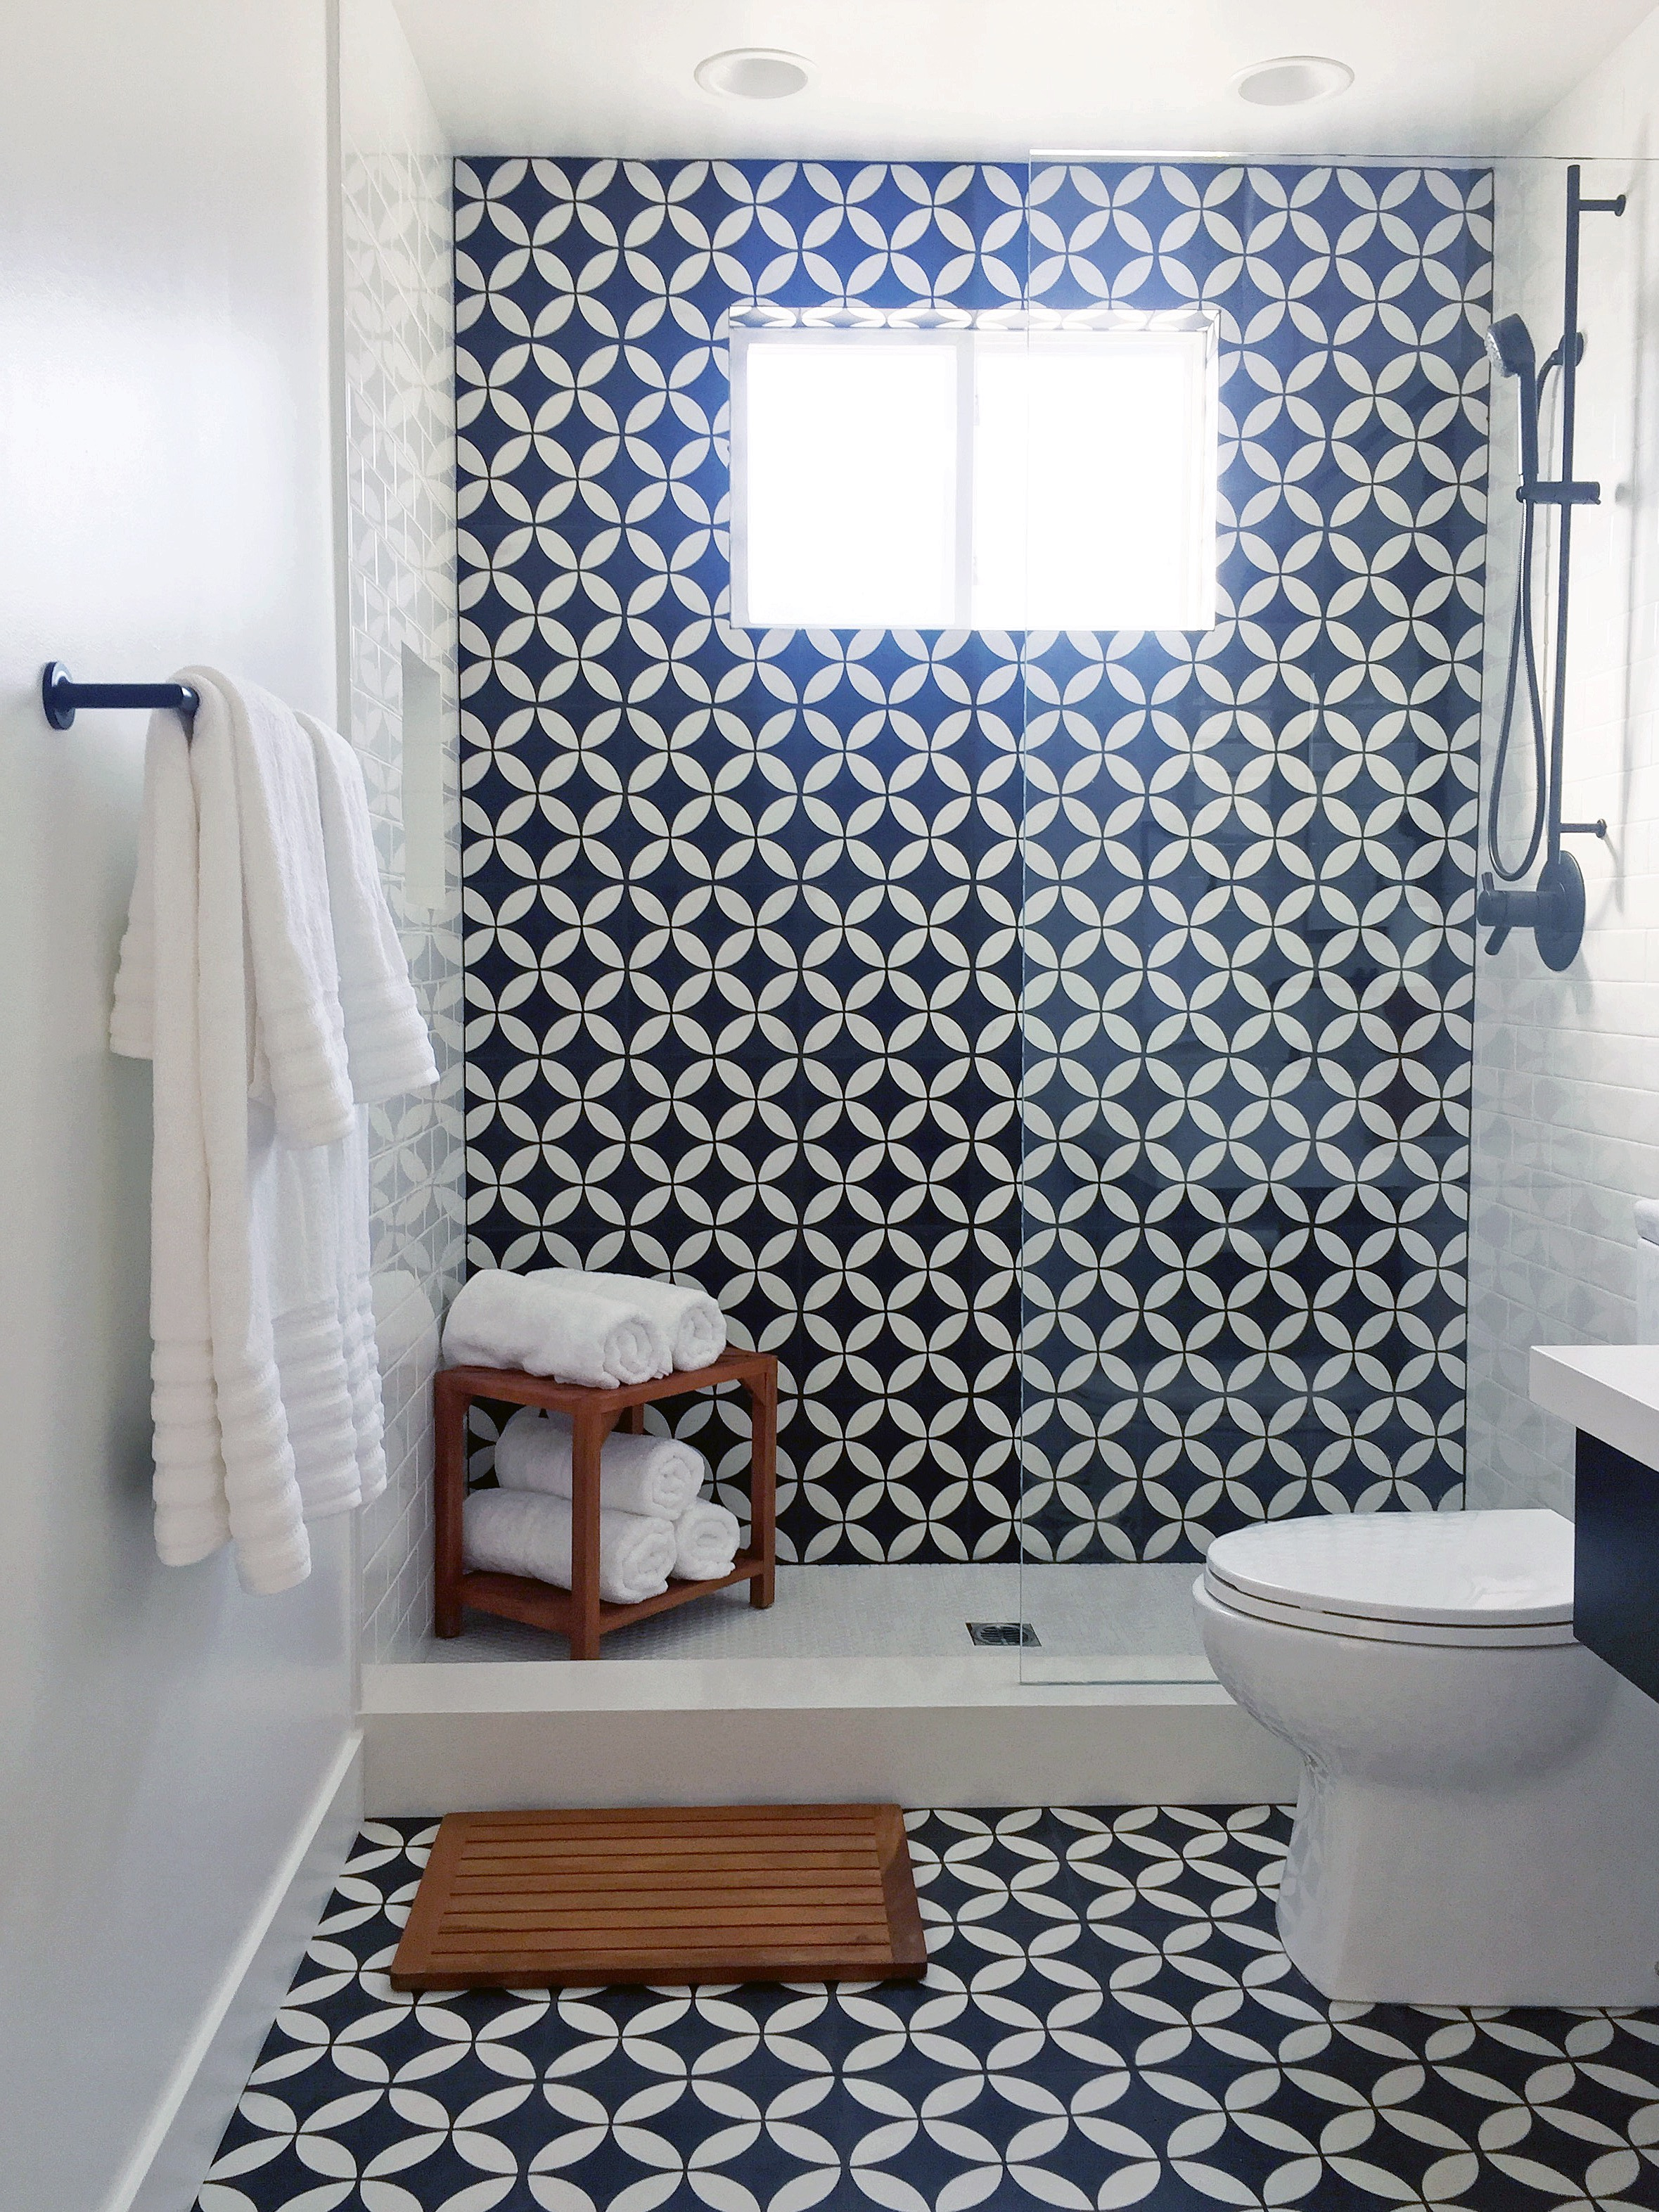 Black And White Small Bathroom Shower And Toilet Combo (View 9 of 14)